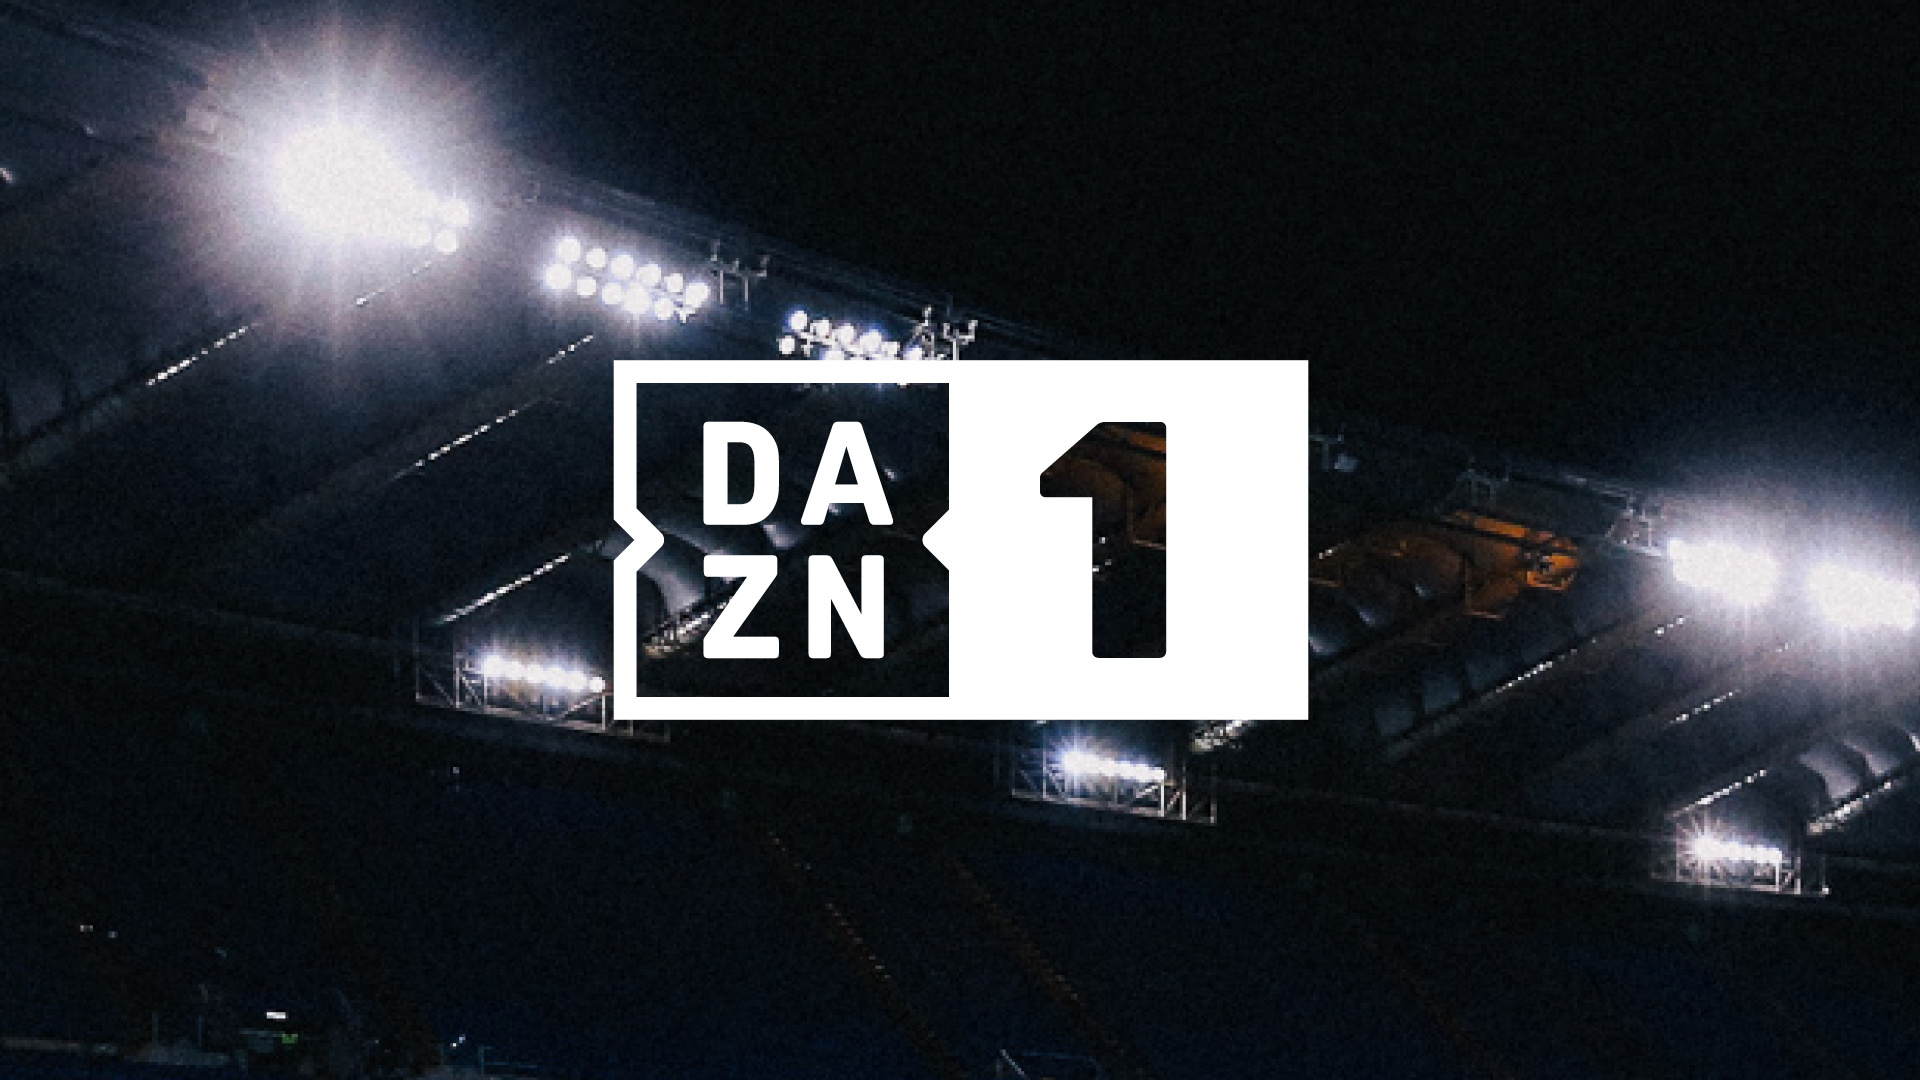 DAZN 1 (canale 209 Sky Sport), Palinsesto 6 - 12 Dicembre